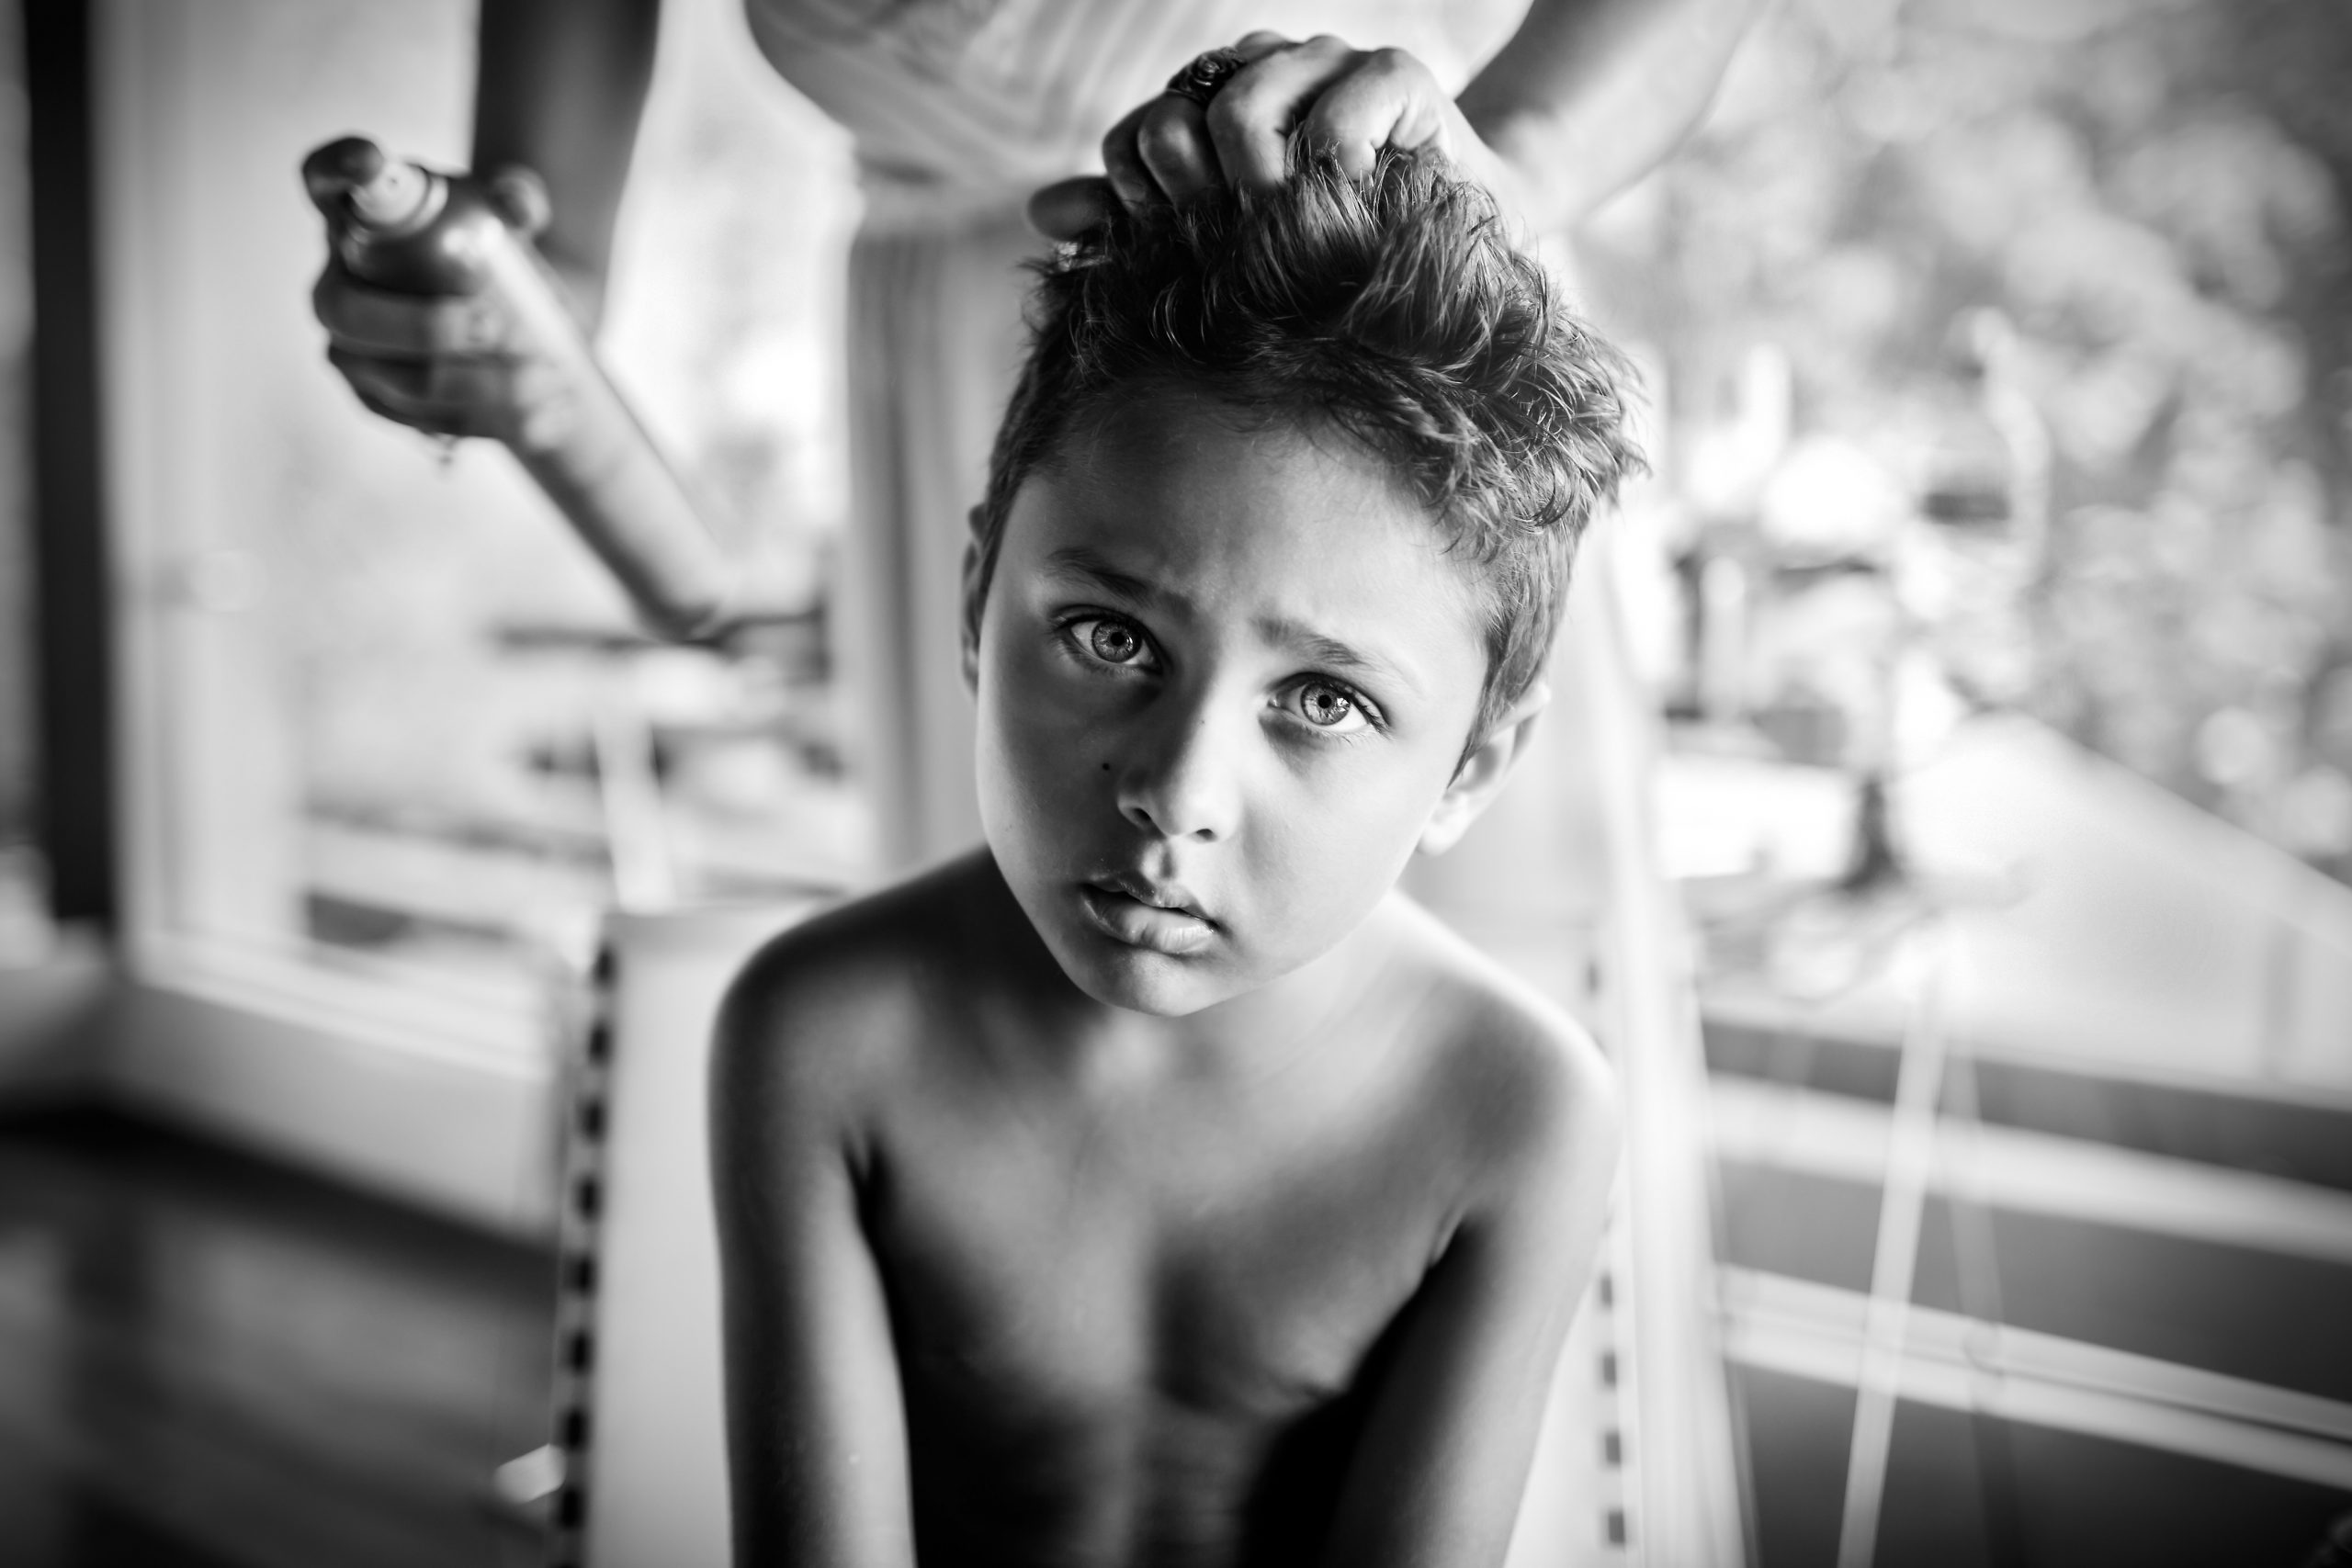 Young boy looks ahead while getting his hair done